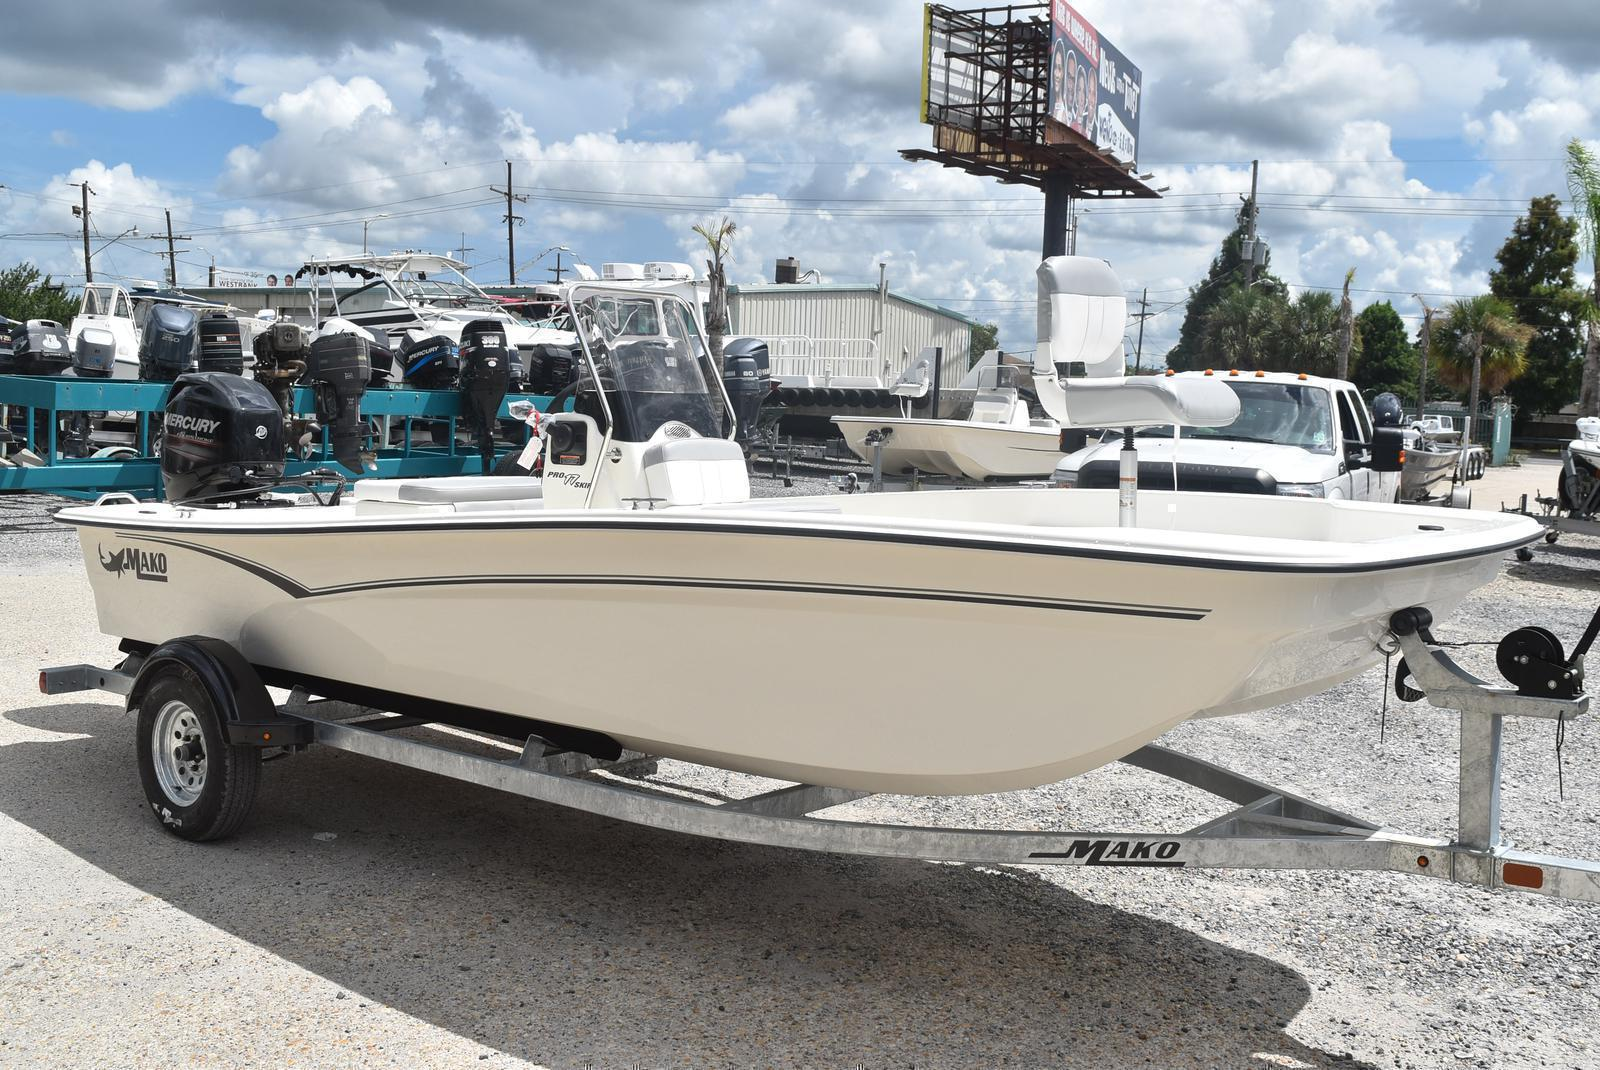 2020 Mako boat for sale, model of the boat is Pro Skiff 17, 75 ELPT & Image # 689 of 702